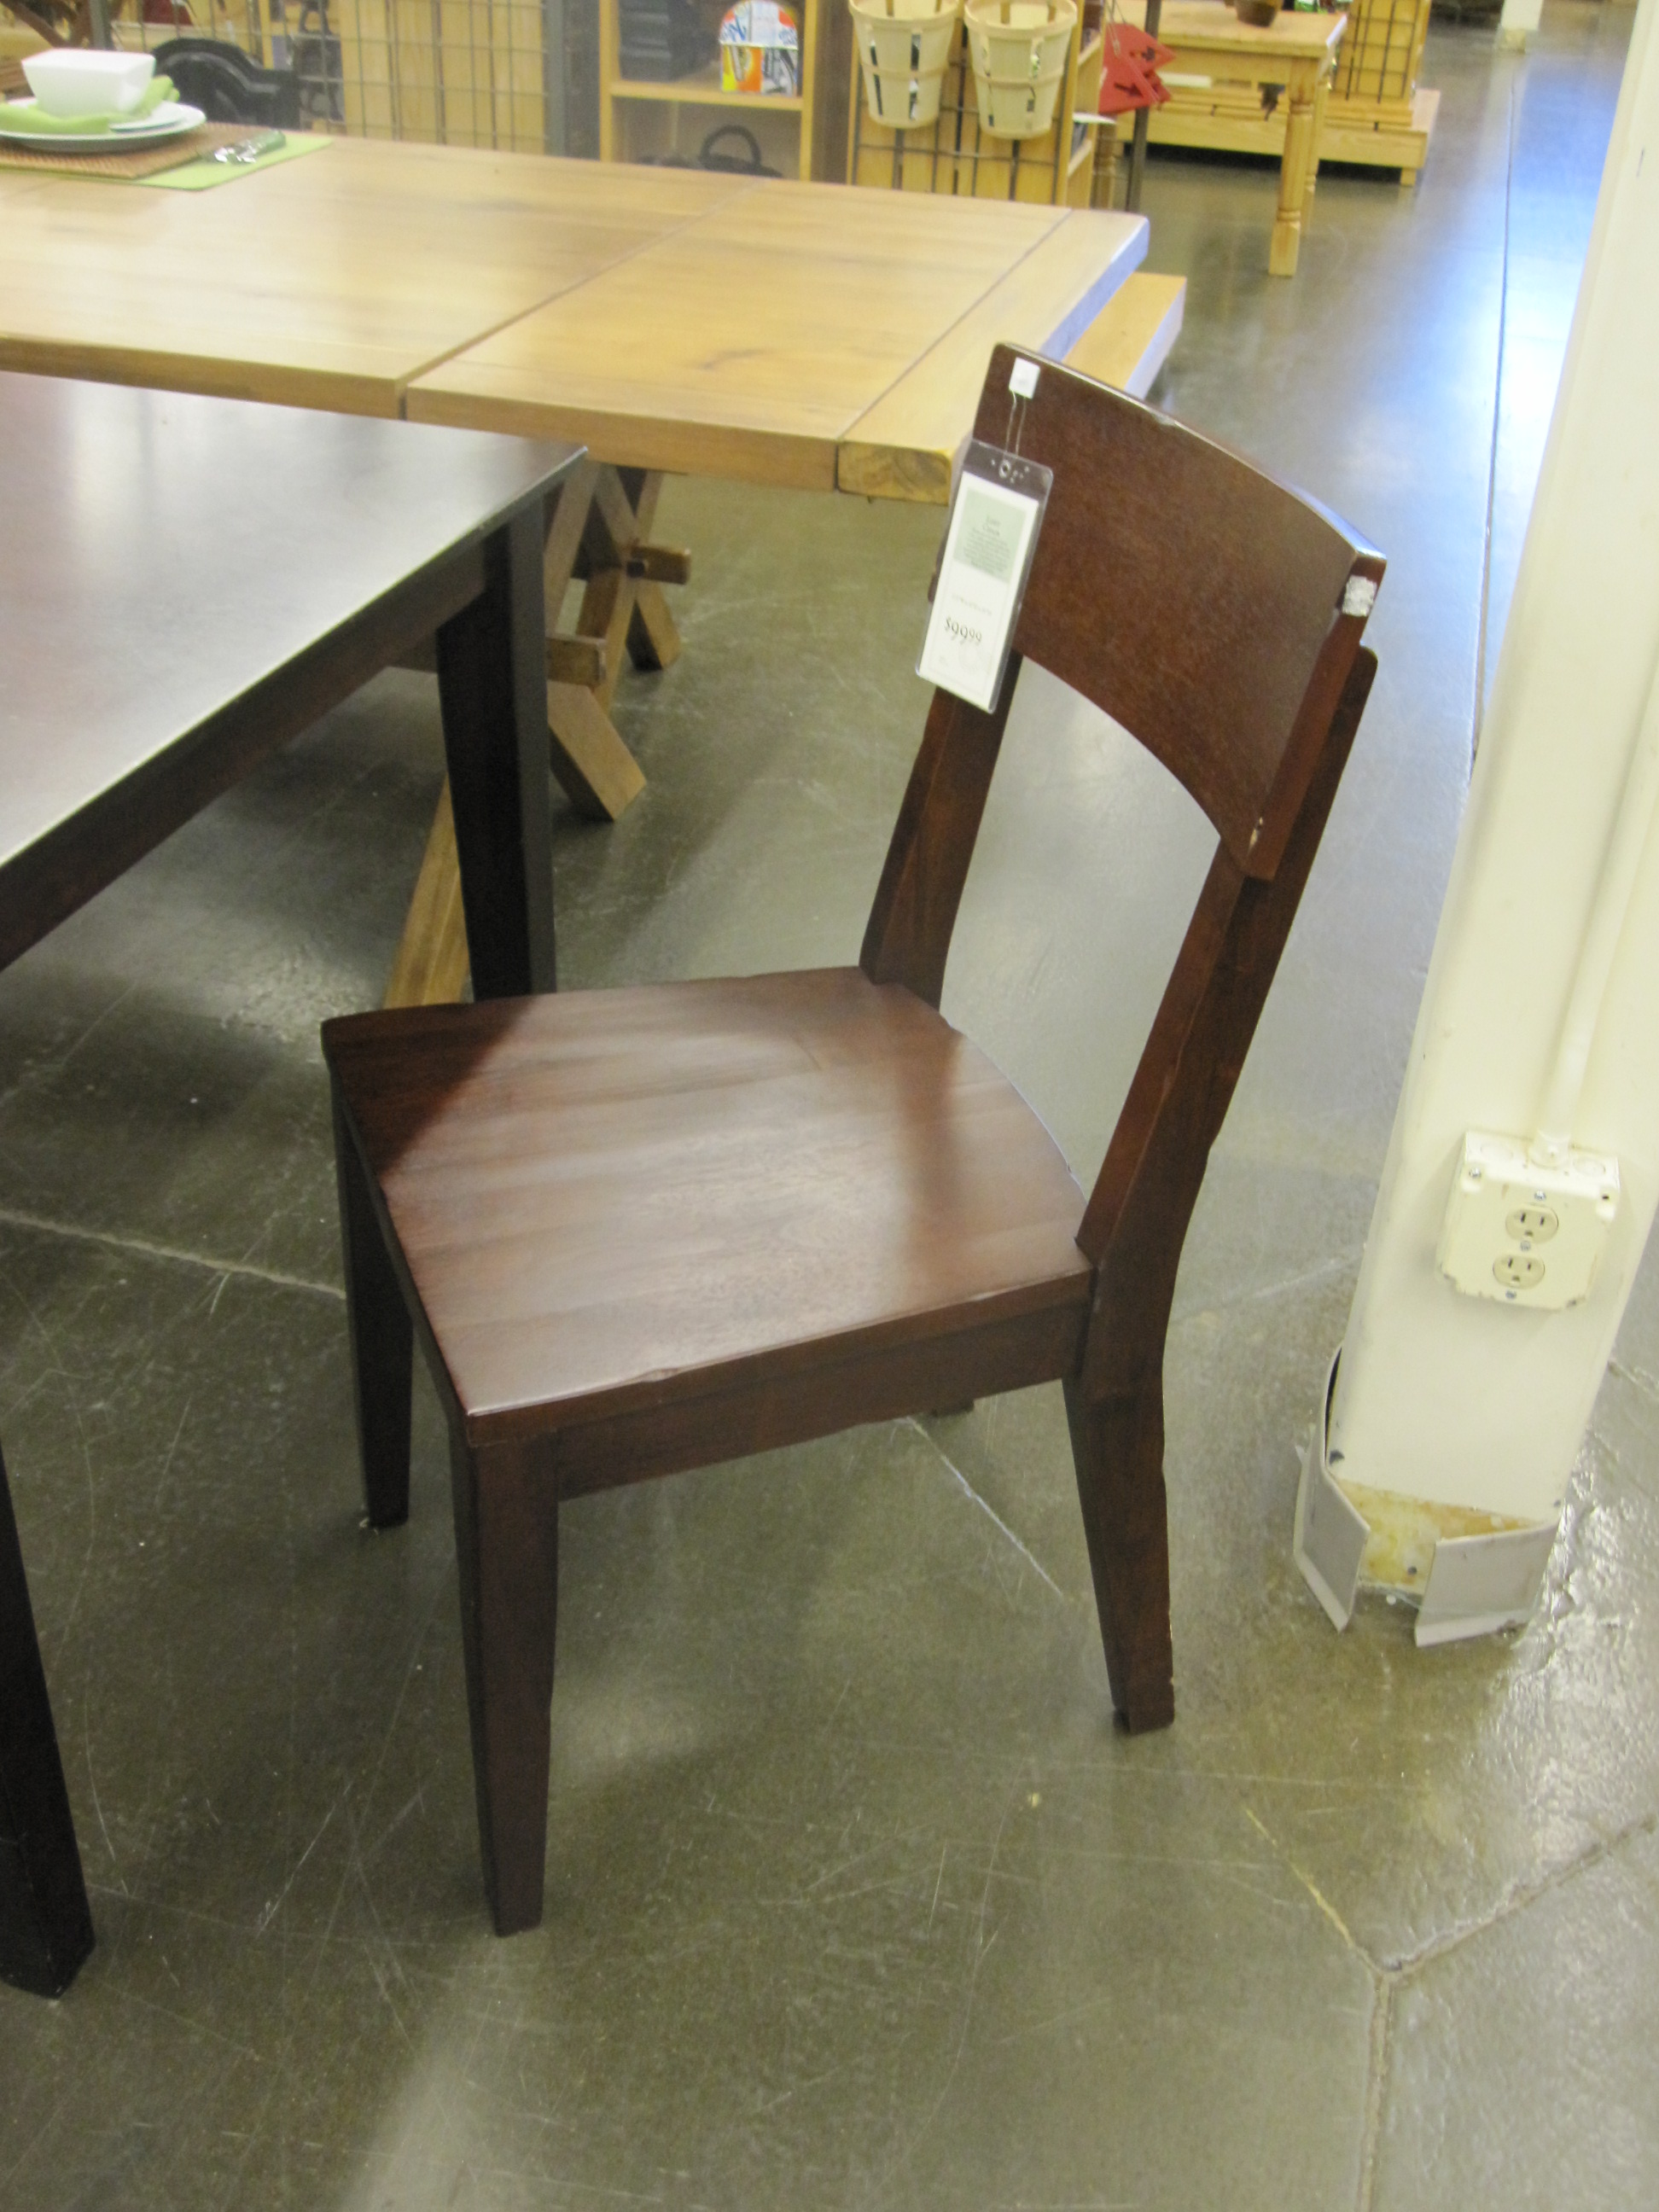 diy dining room chairs plans chair styles antique pdf download woodworking with kids